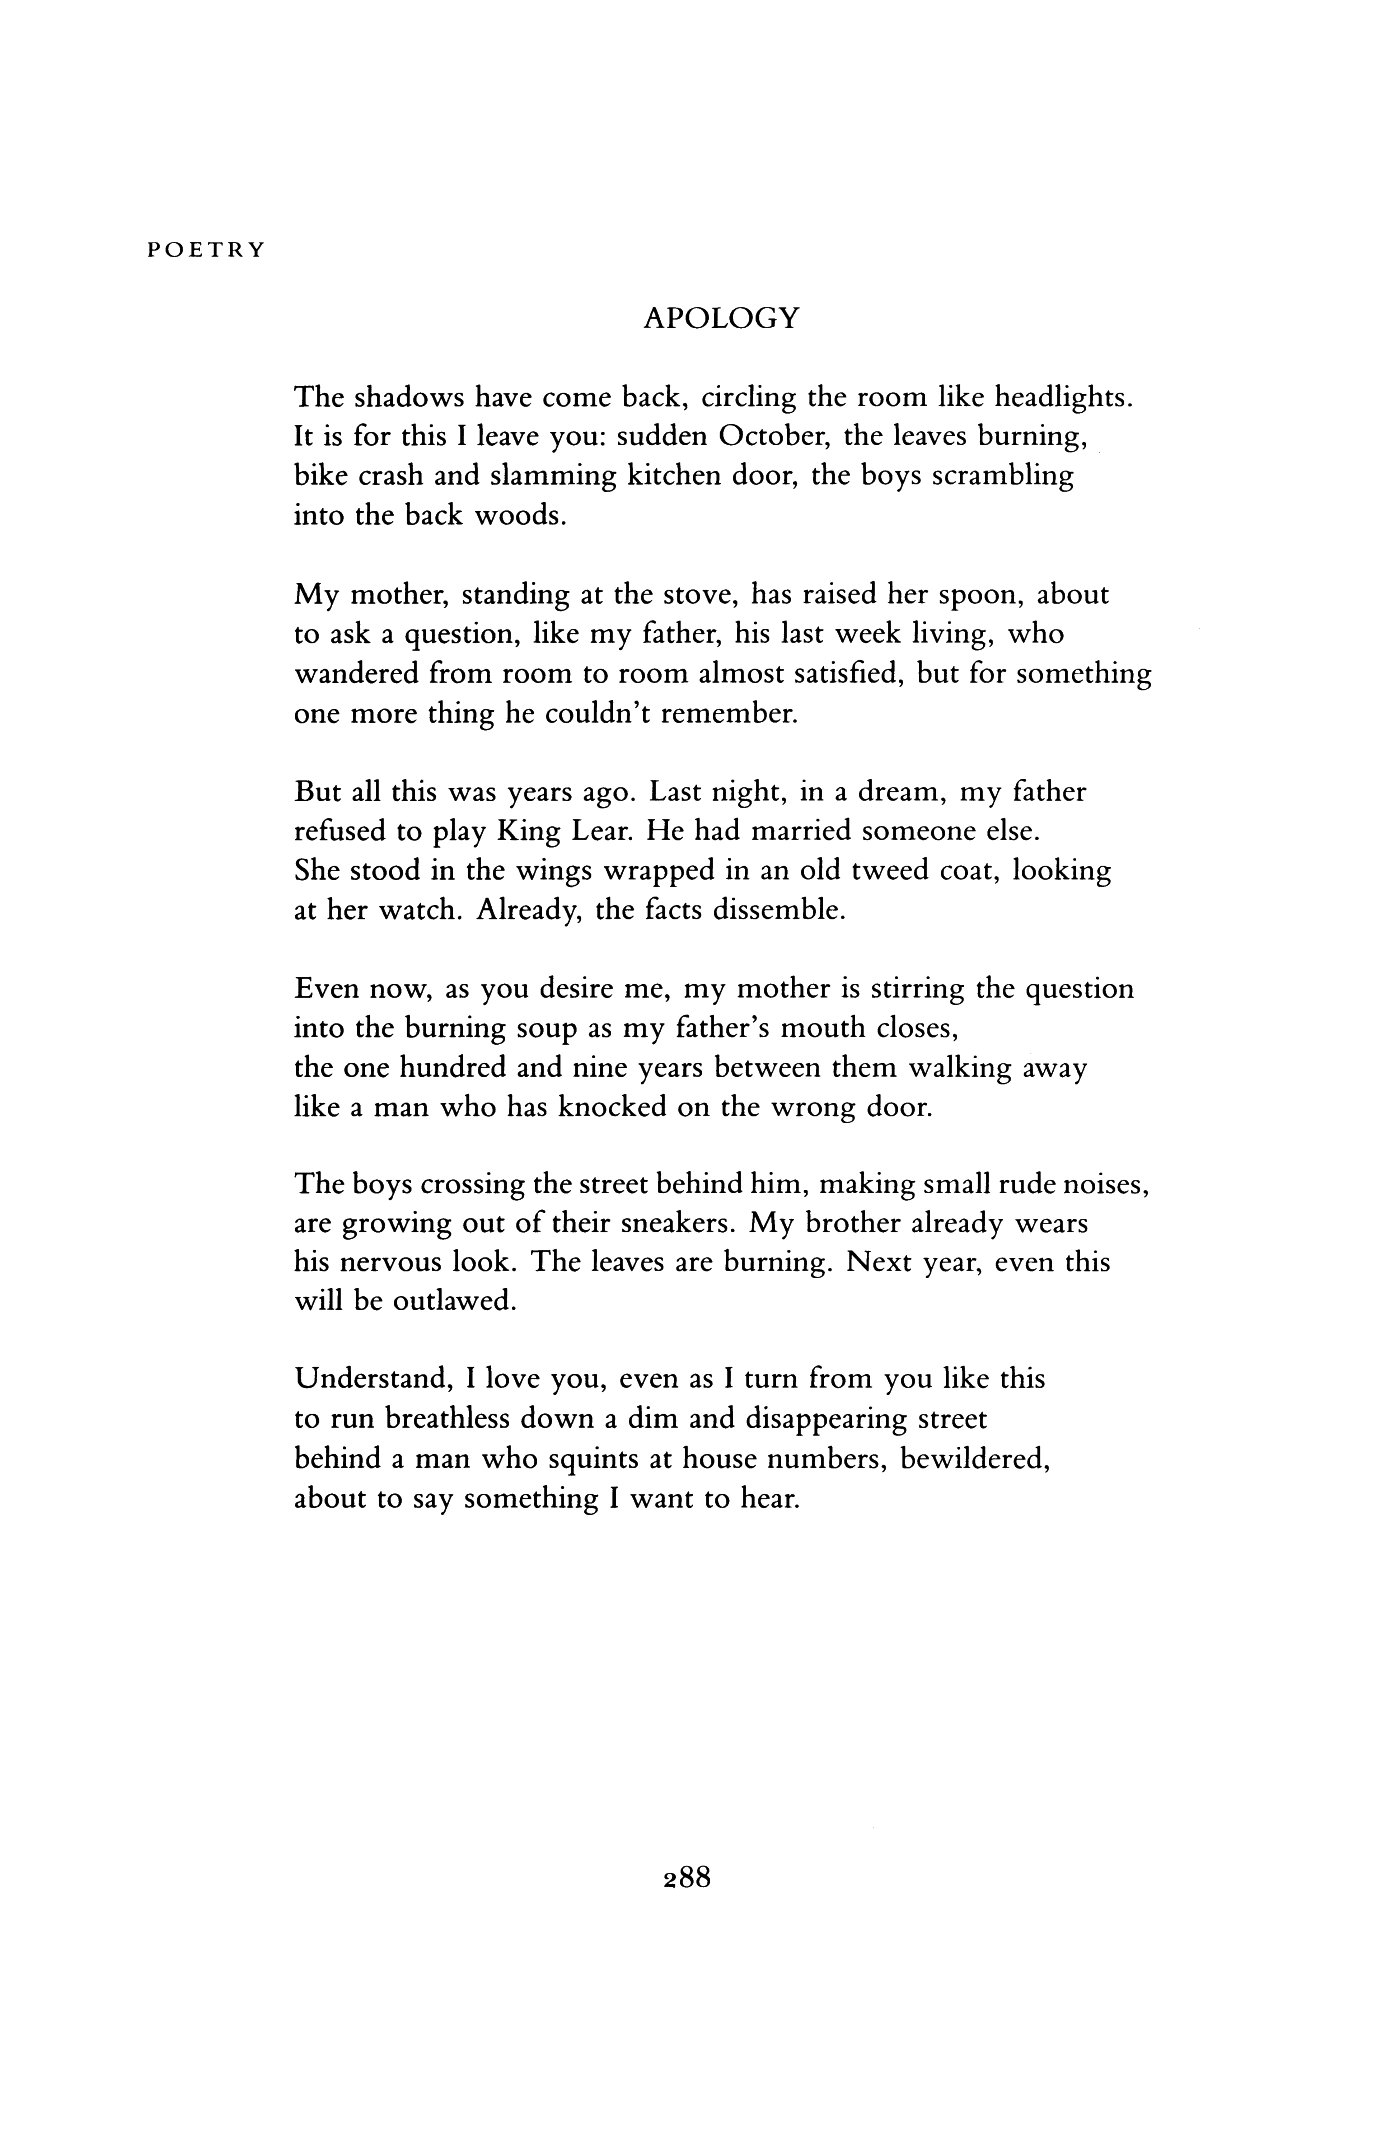 the apology poem meaning